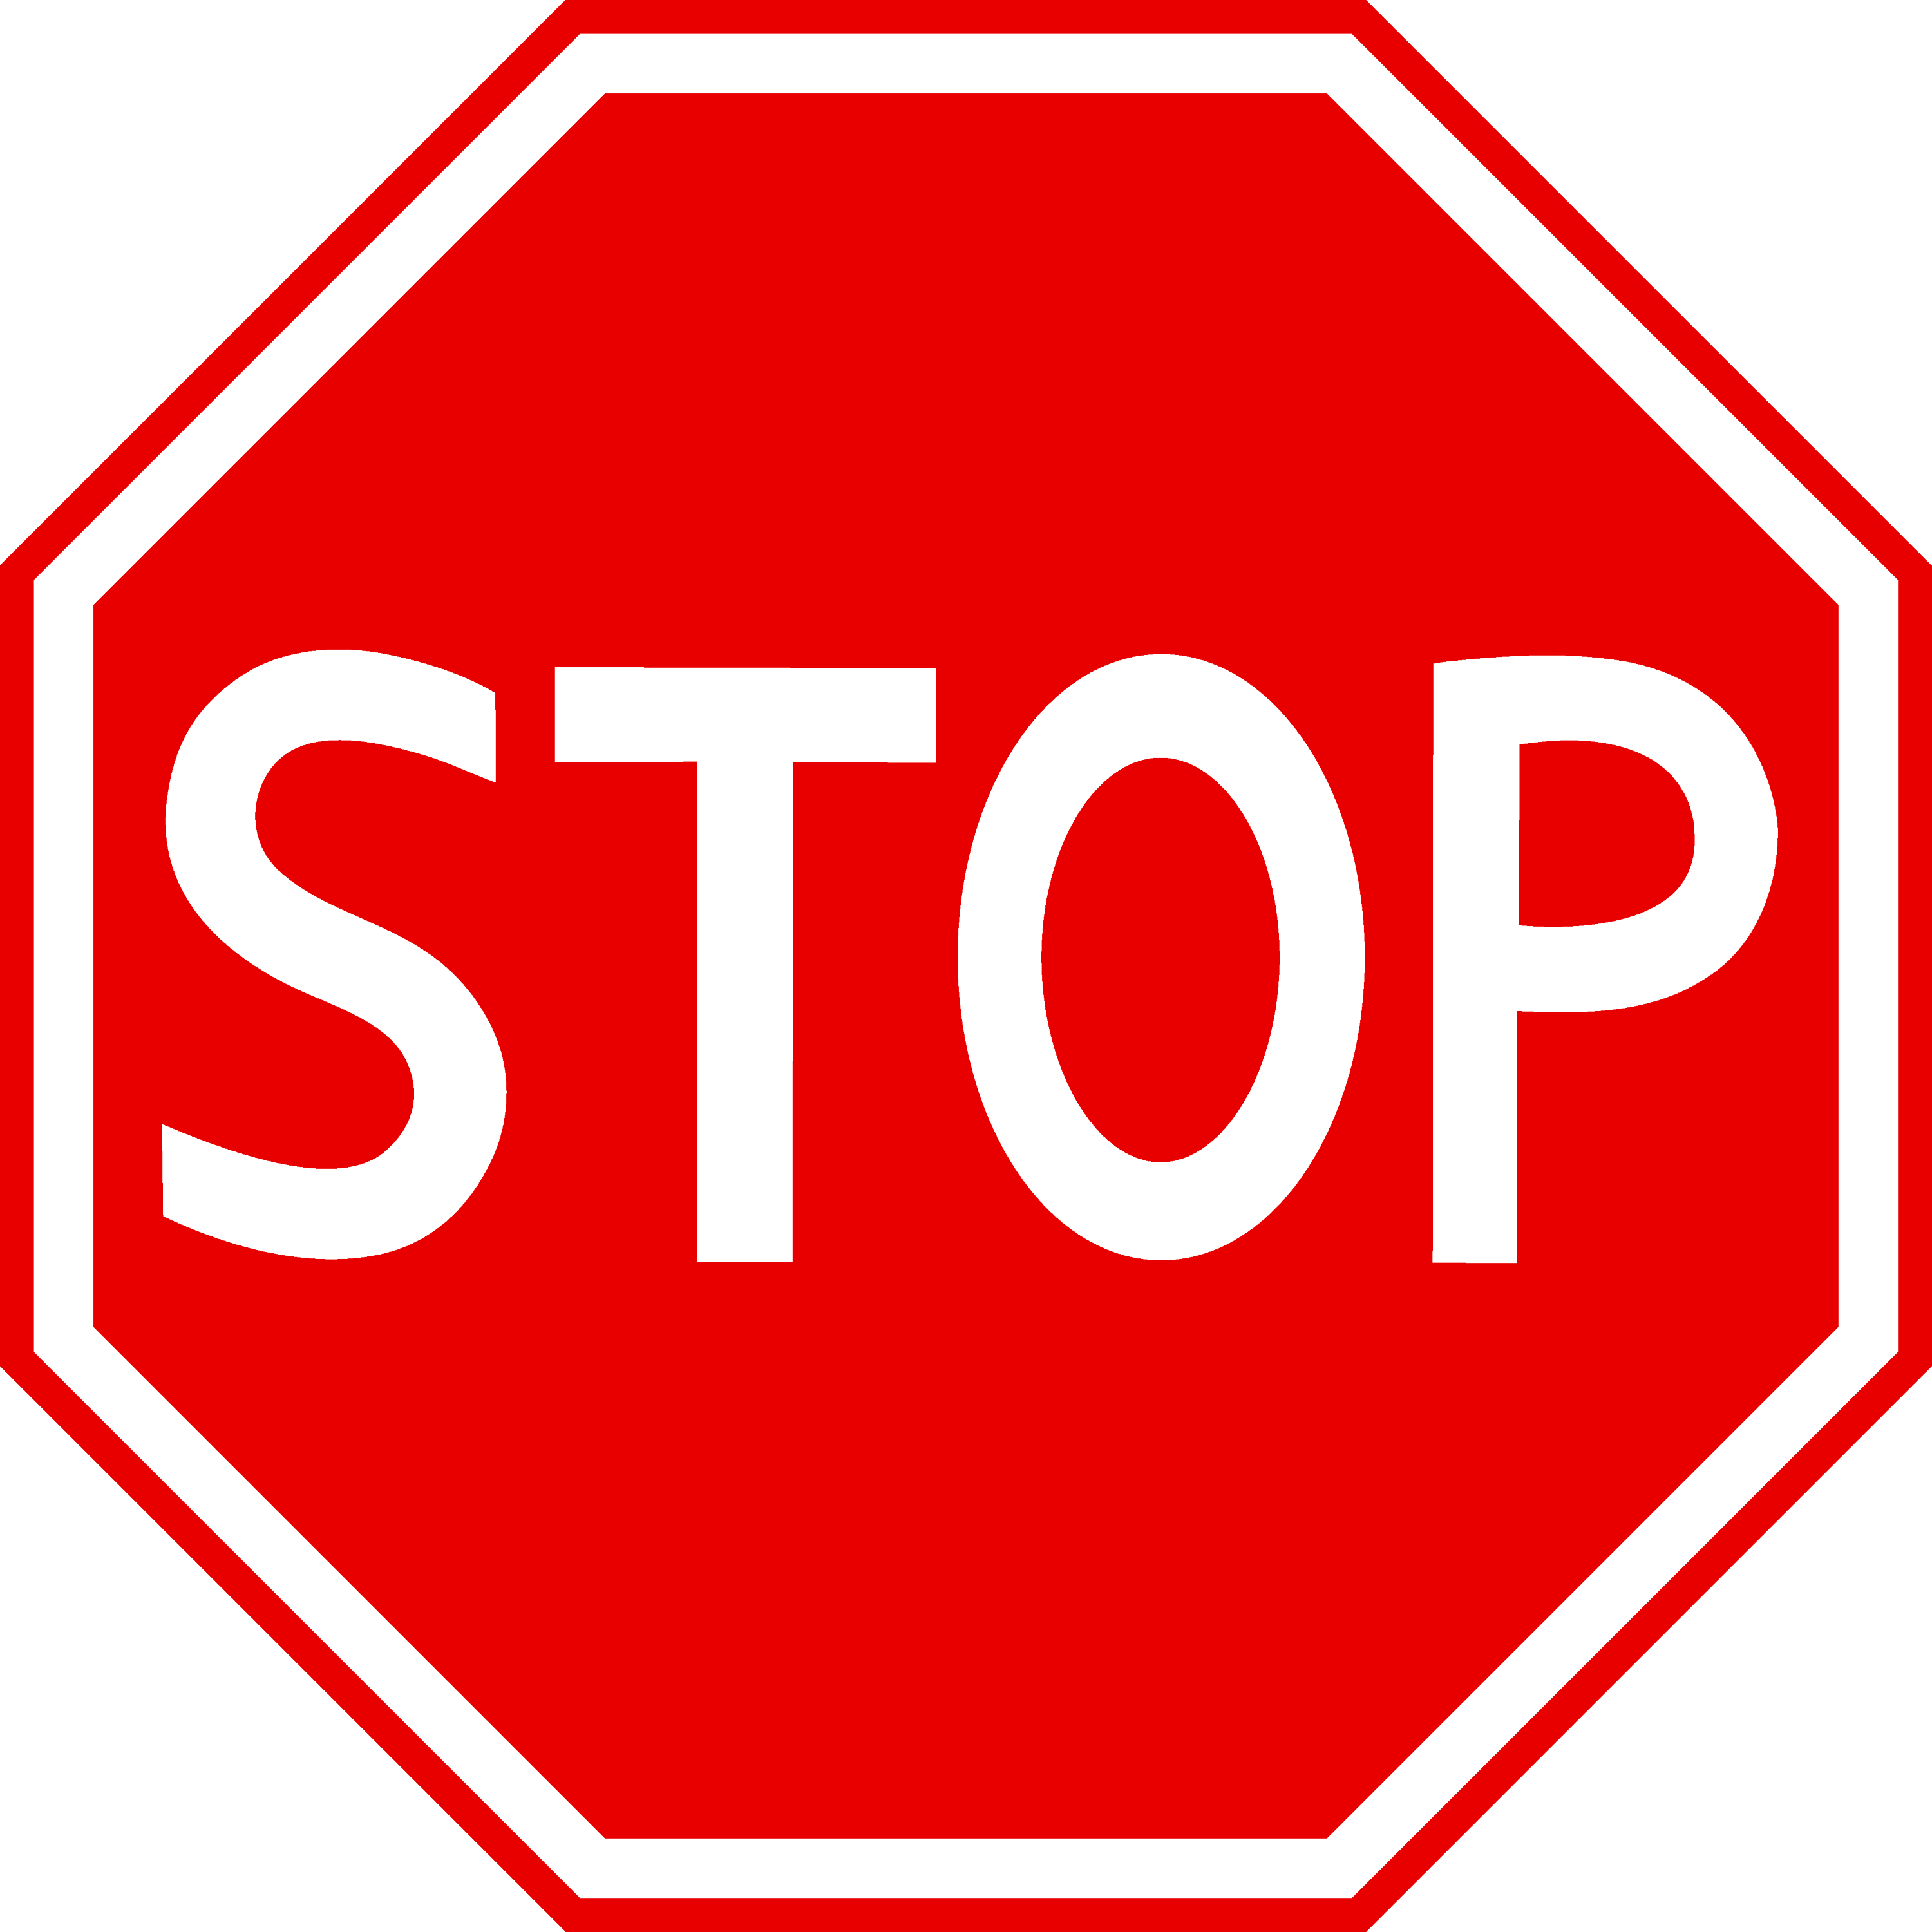 Red Stop Sign Clipart - Free Clip Art